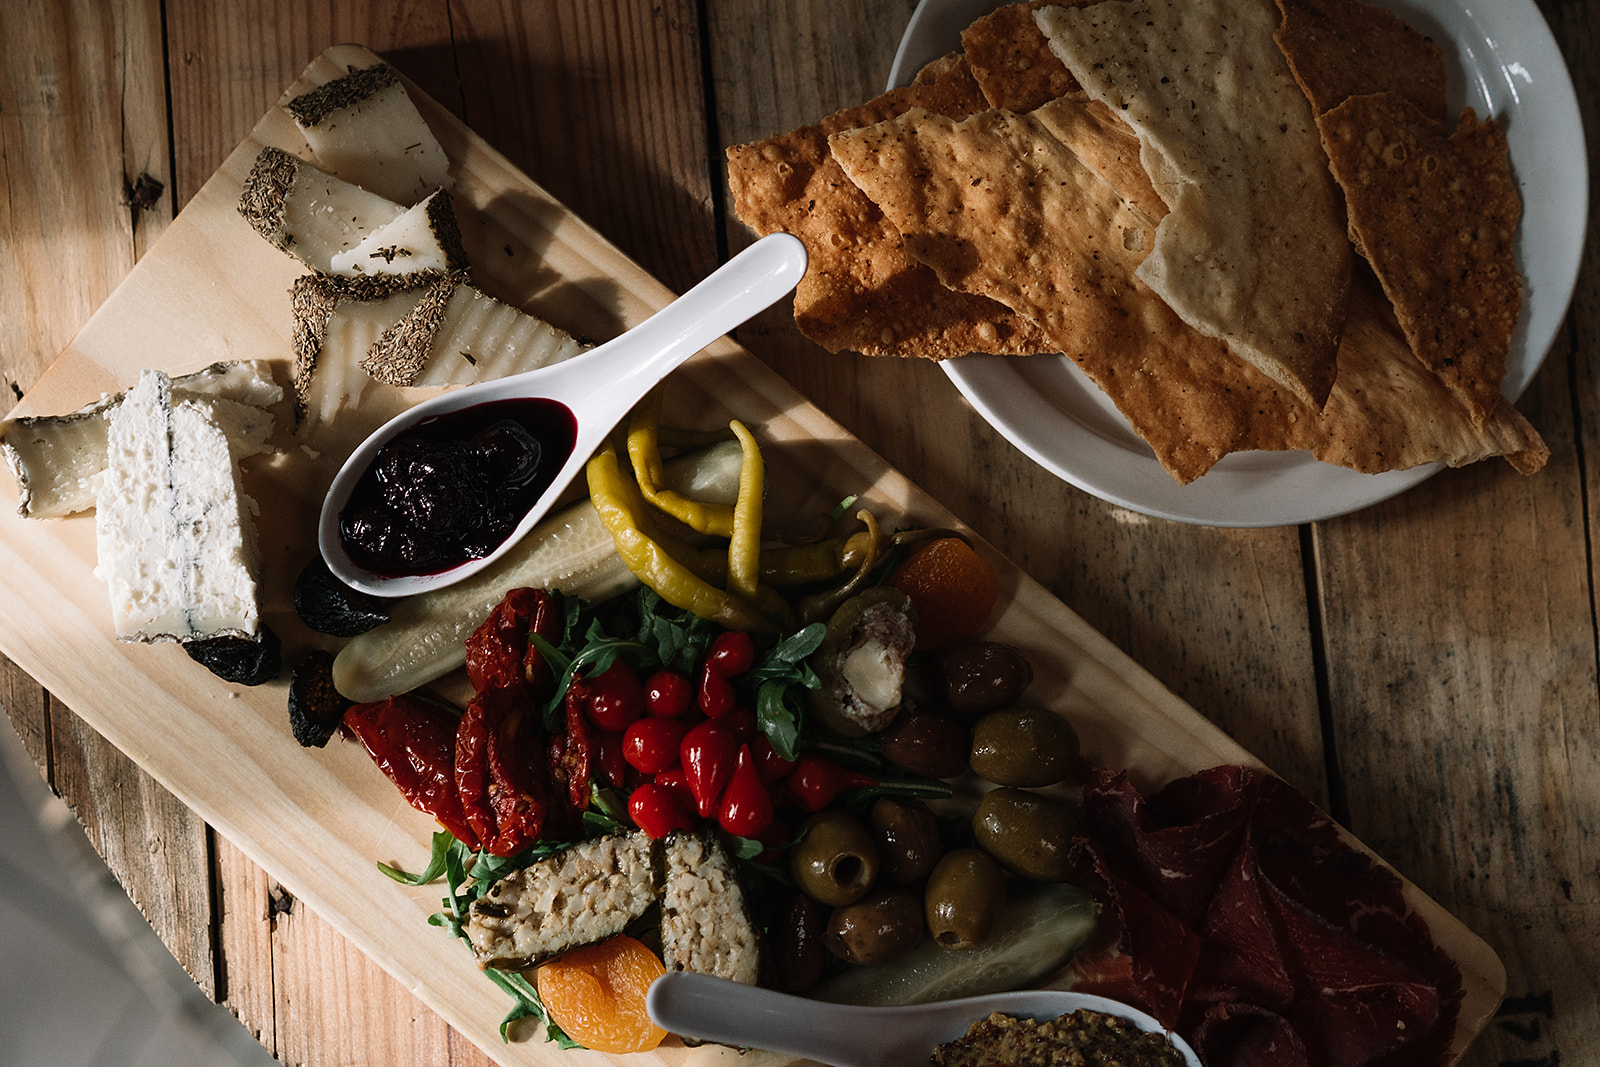 A charcuterie board full of meats, cheese and vegetables sits on a table with a plate of crackers.